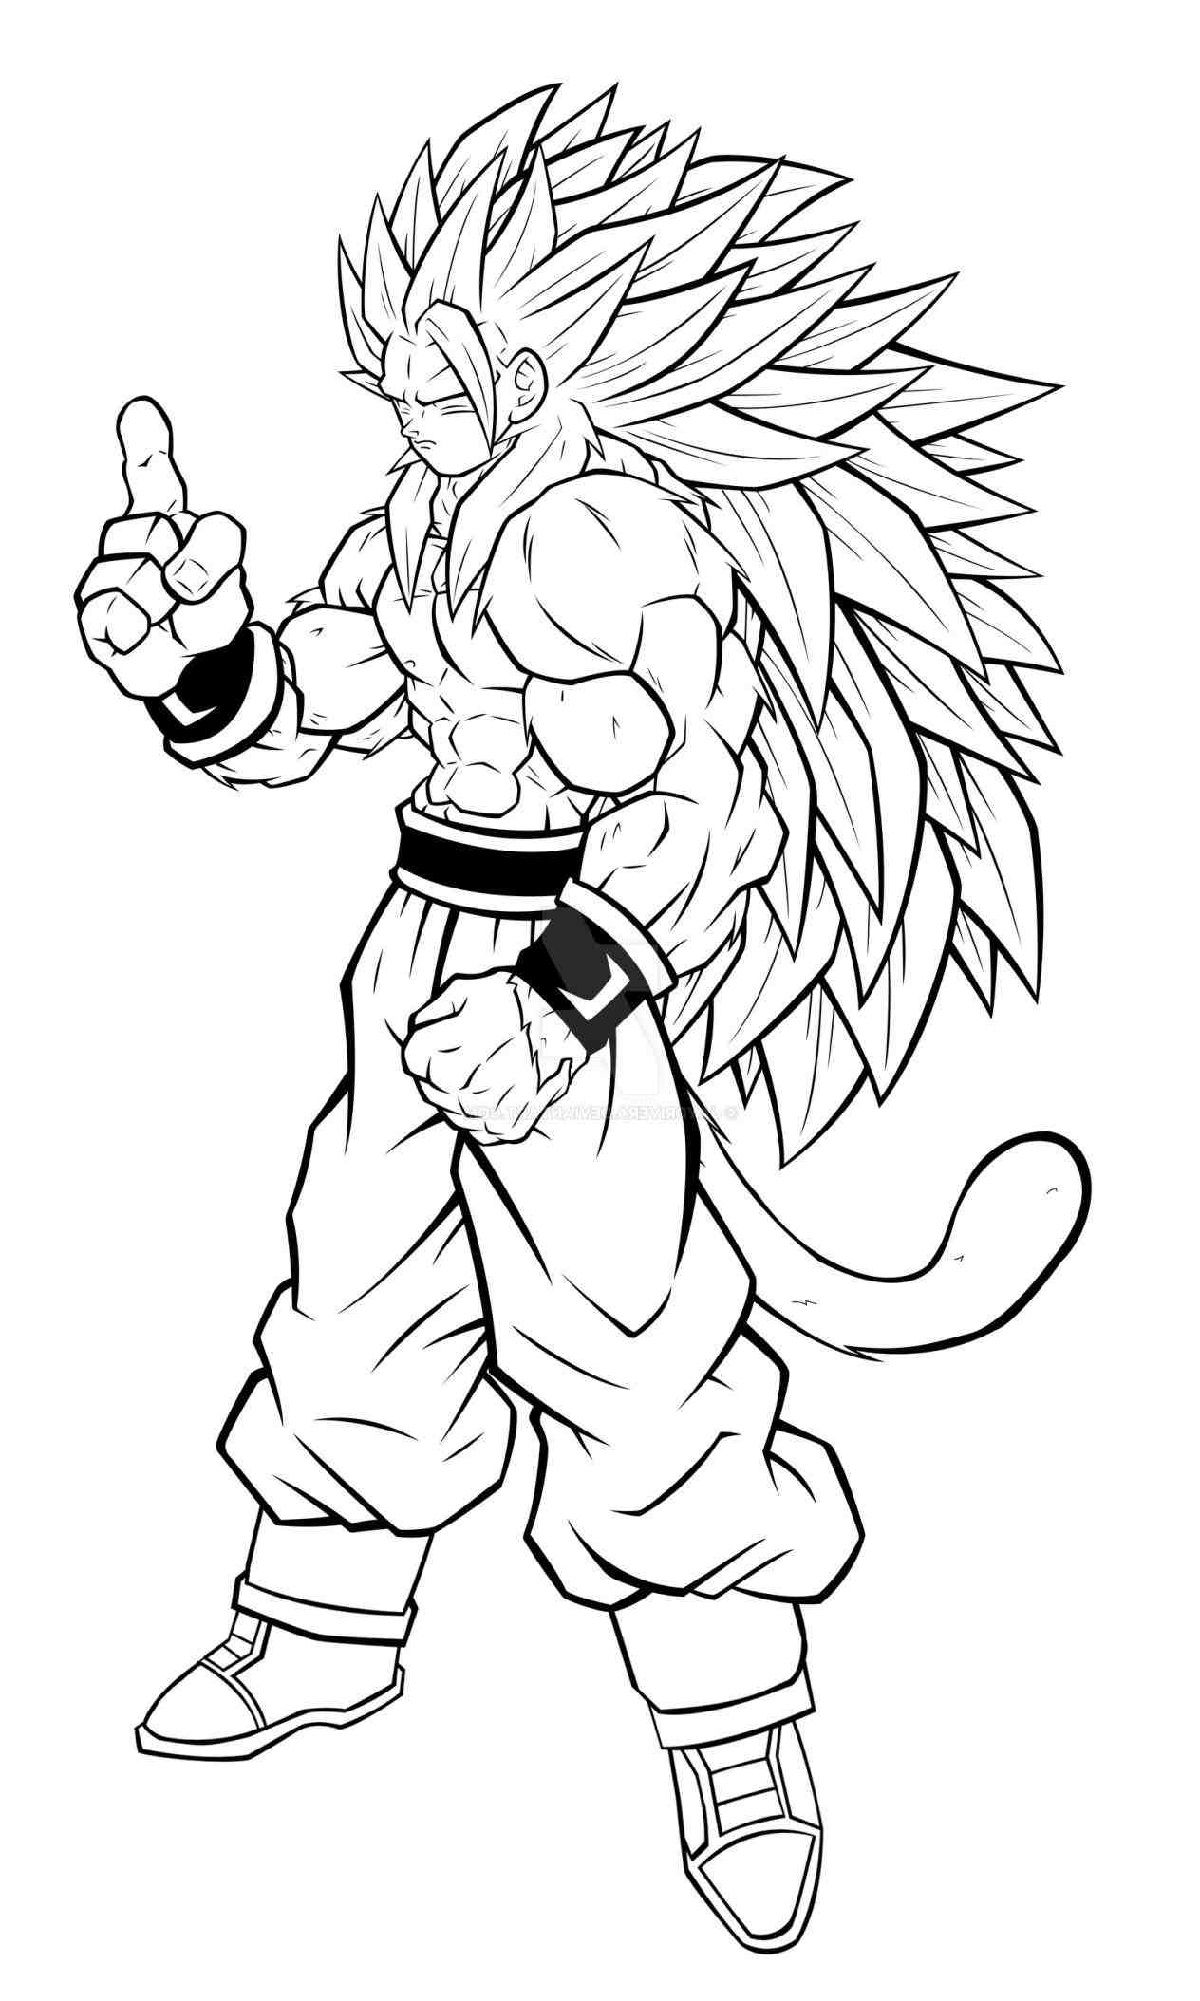 Free Dragon Ball Super Coloring Pages Educative Printable Super Coloring Pages Coloring Pages Cartoon Coloring Pages [ 2001 x 1200 Pixel ]